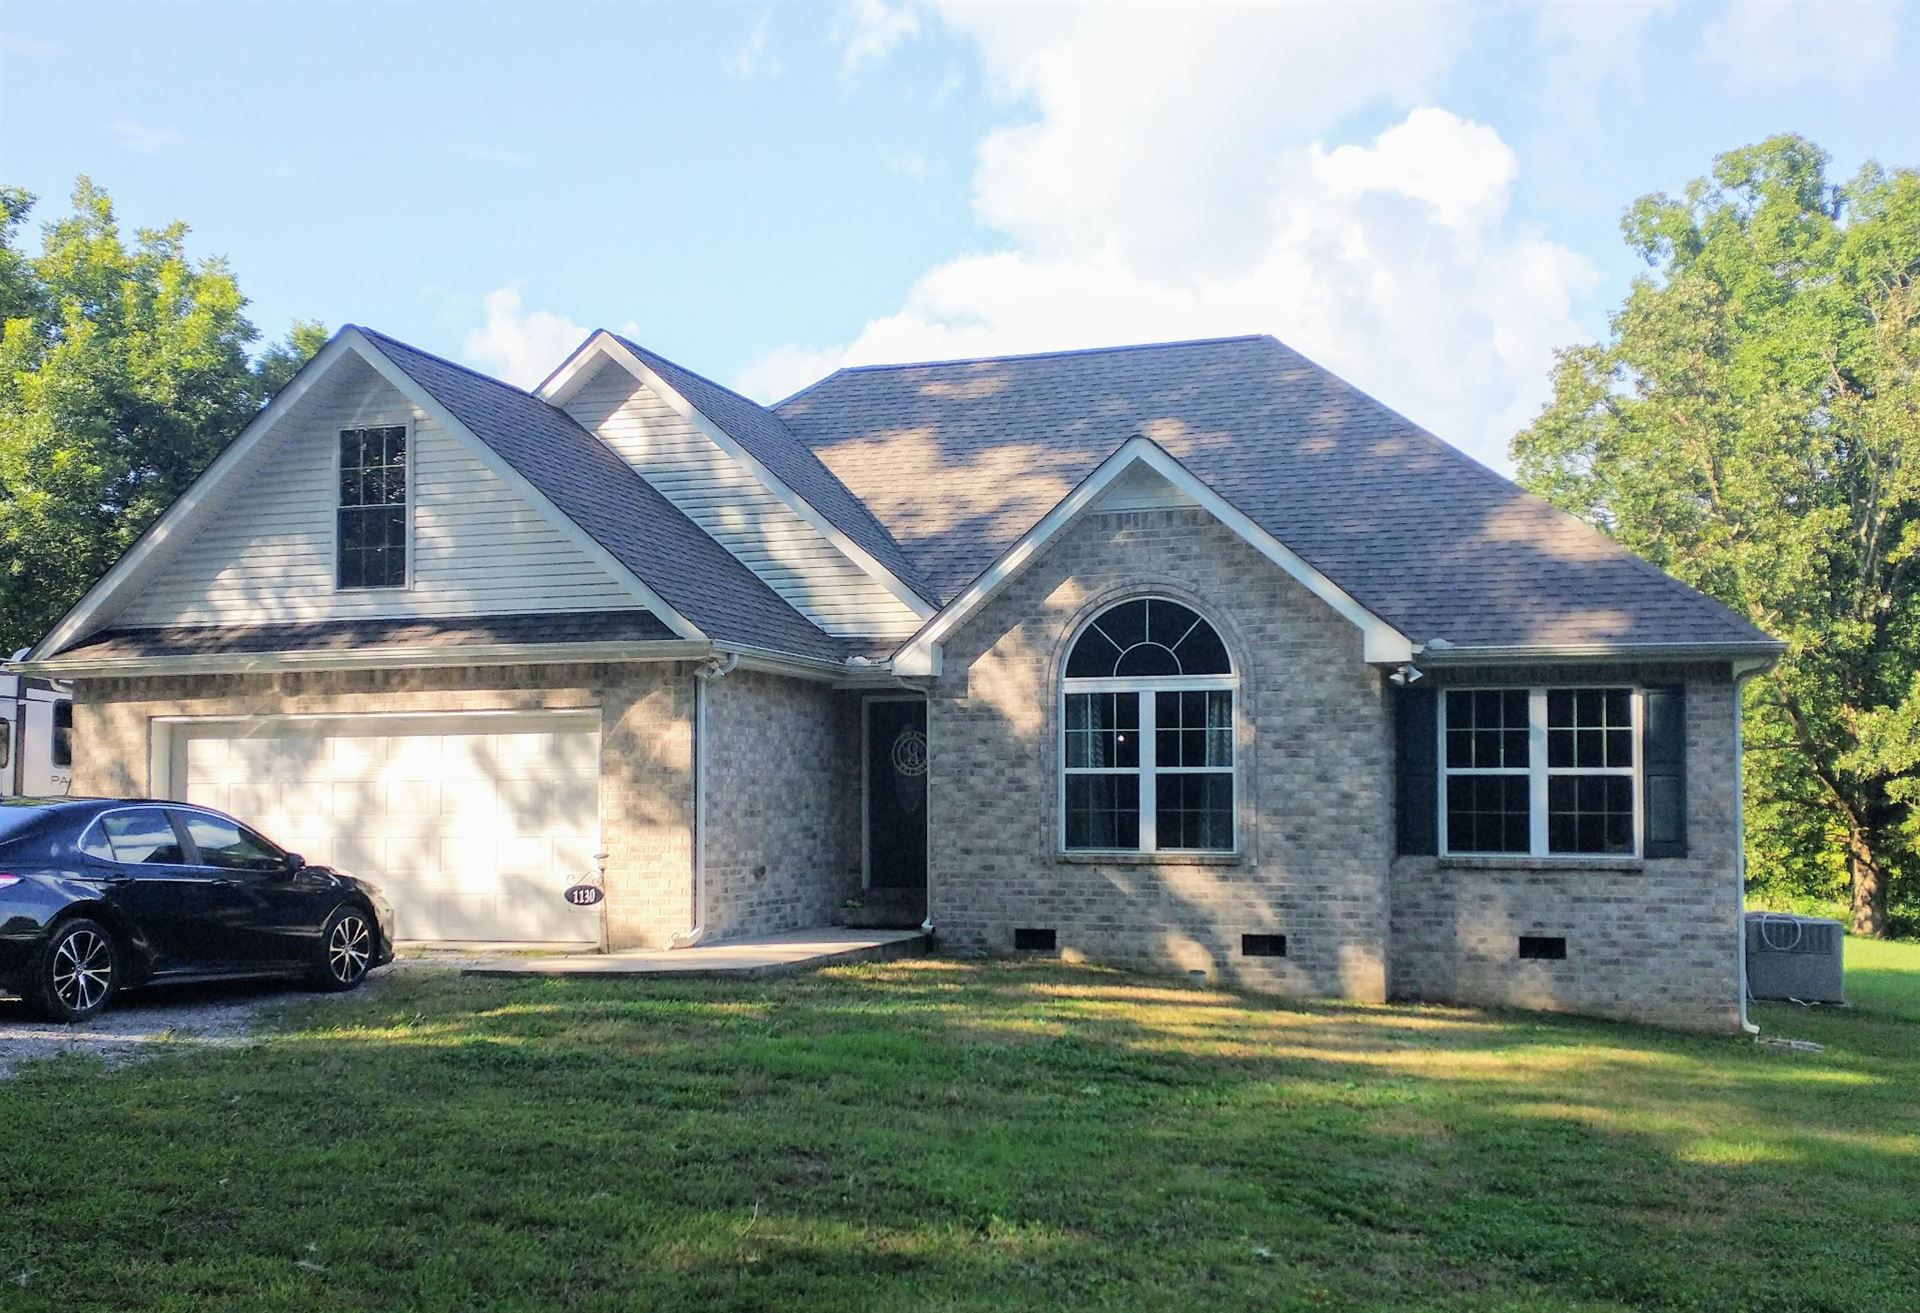 1130 Perry Rd, Manchester, TN 37355 - MLS#: 2287509